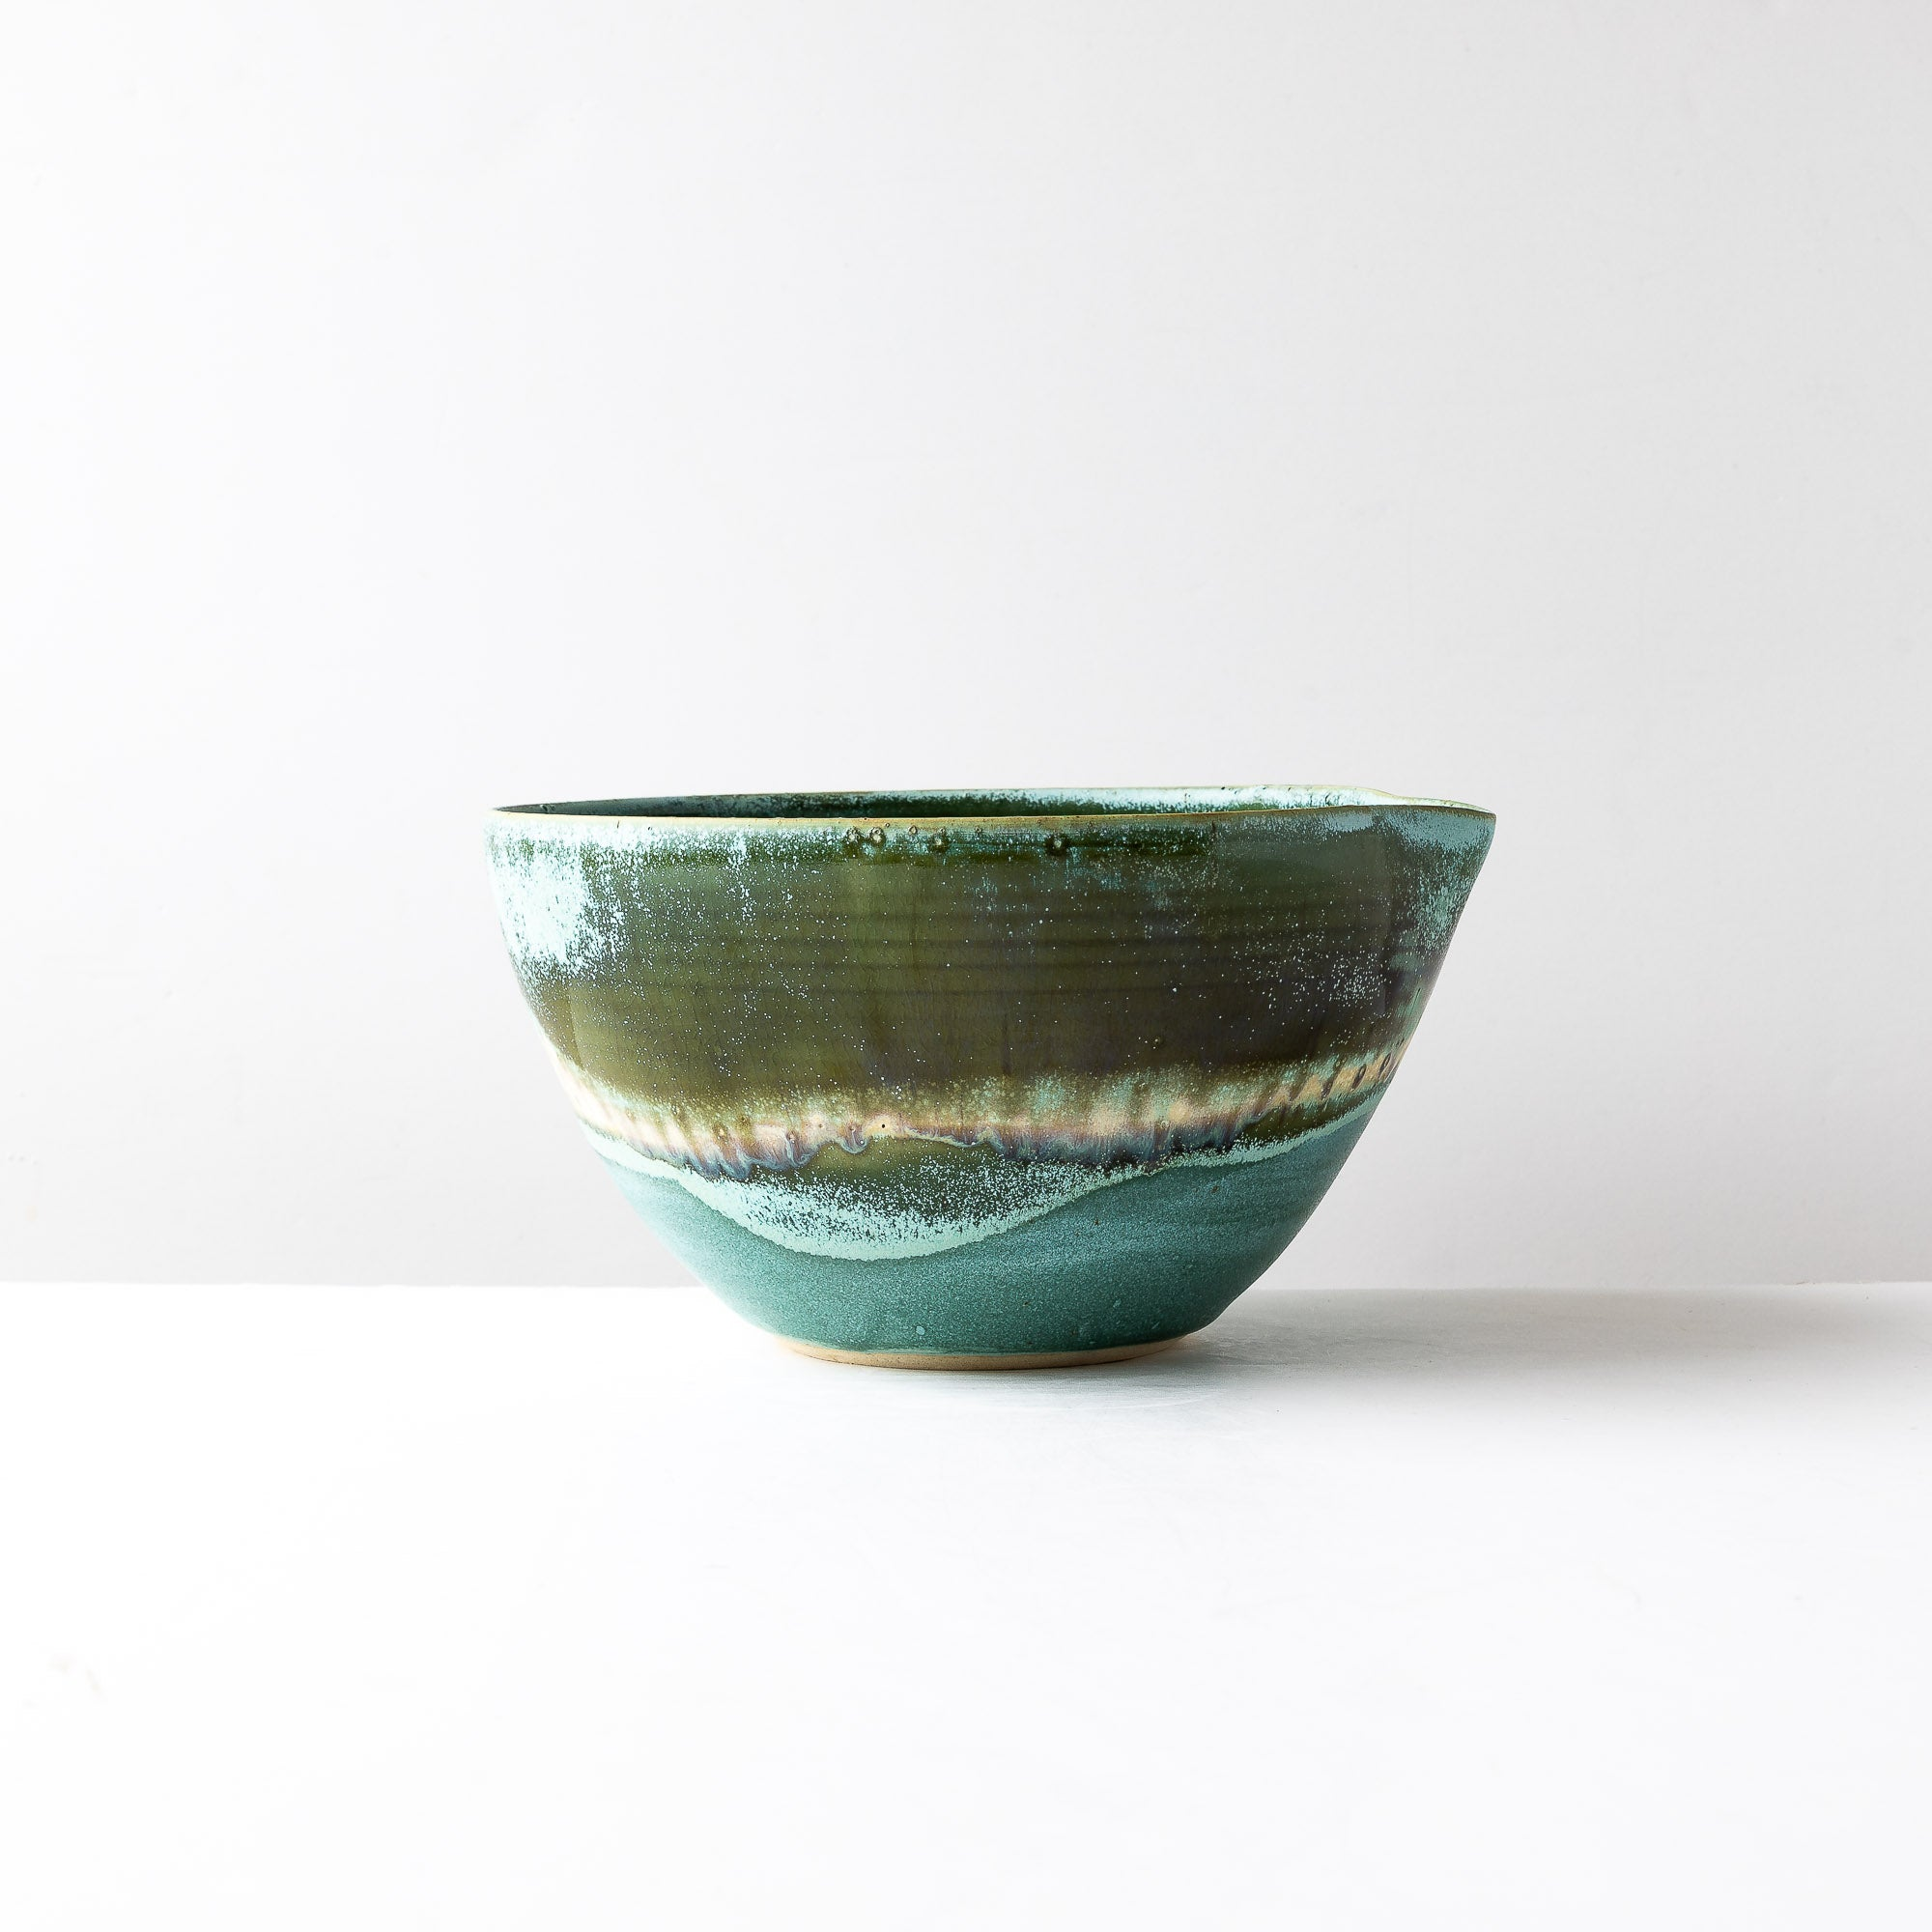 Side View - Handmade Stoneware Large Mixing Bowl with Spout - Sold by Chic & Basta